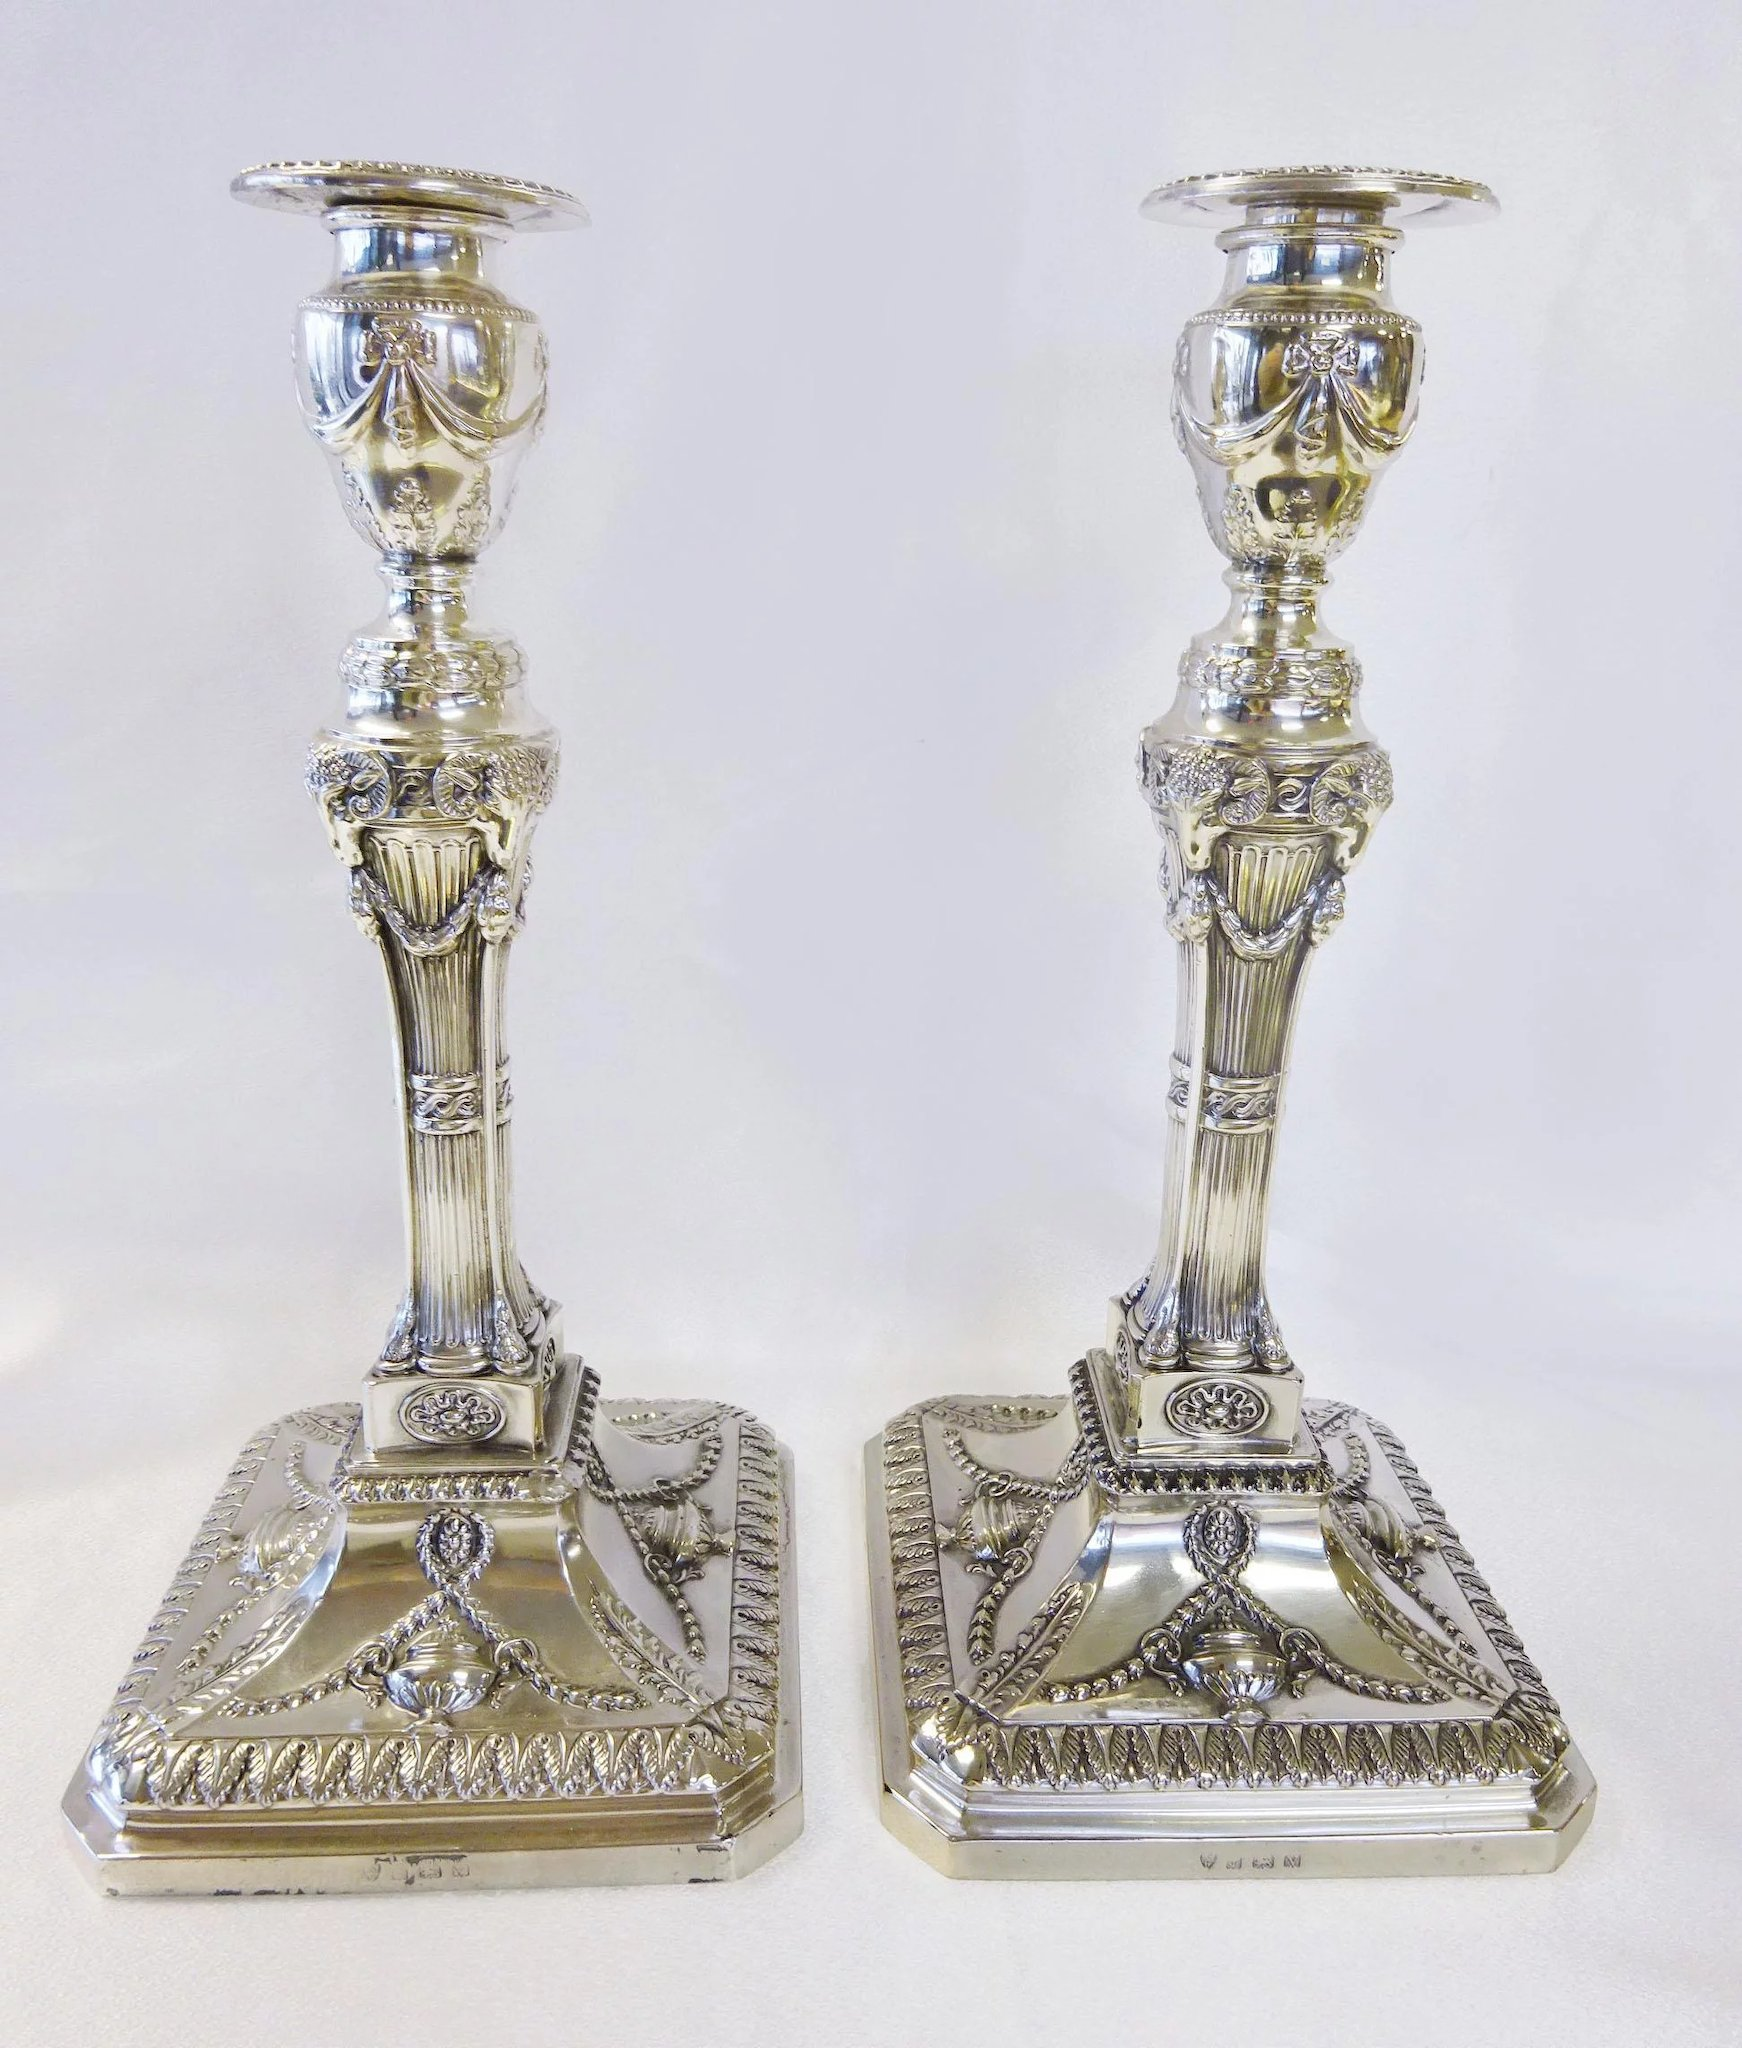 Pair of sterling silver candlesticks, hallmarked London